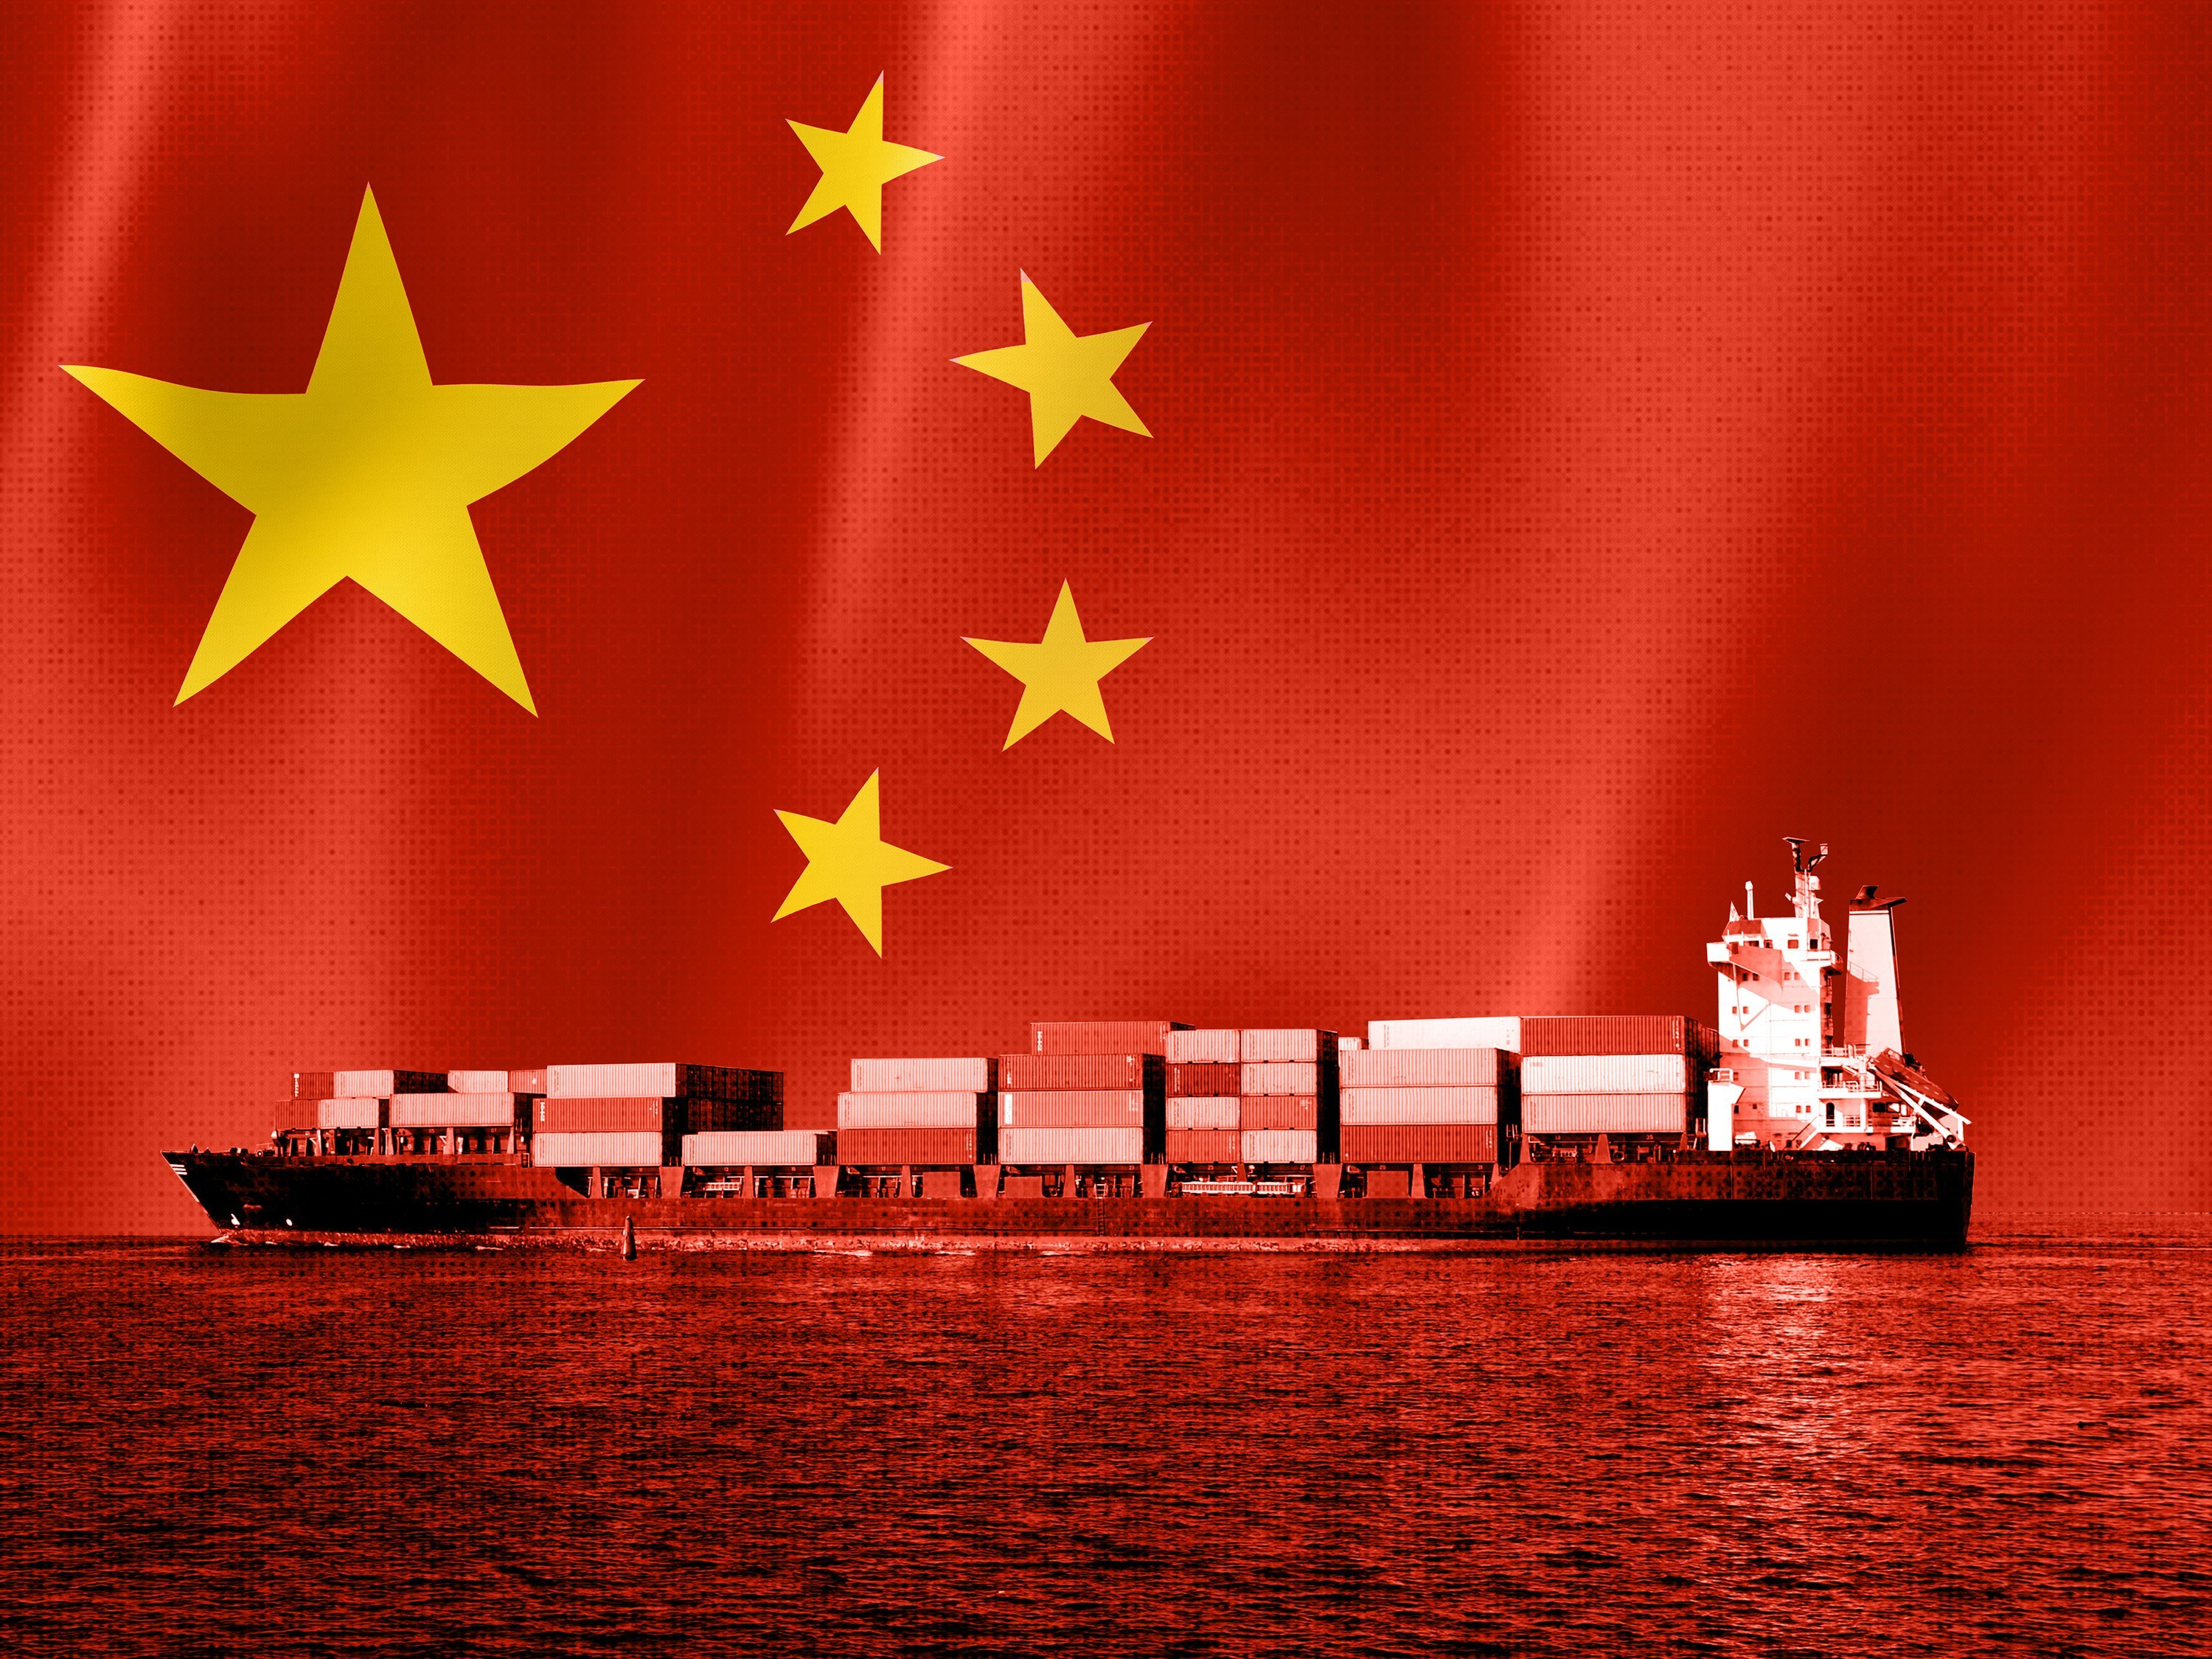 Walking back from the trade war ledge, the US just exempted hundreds more Chinese goods from tariffs